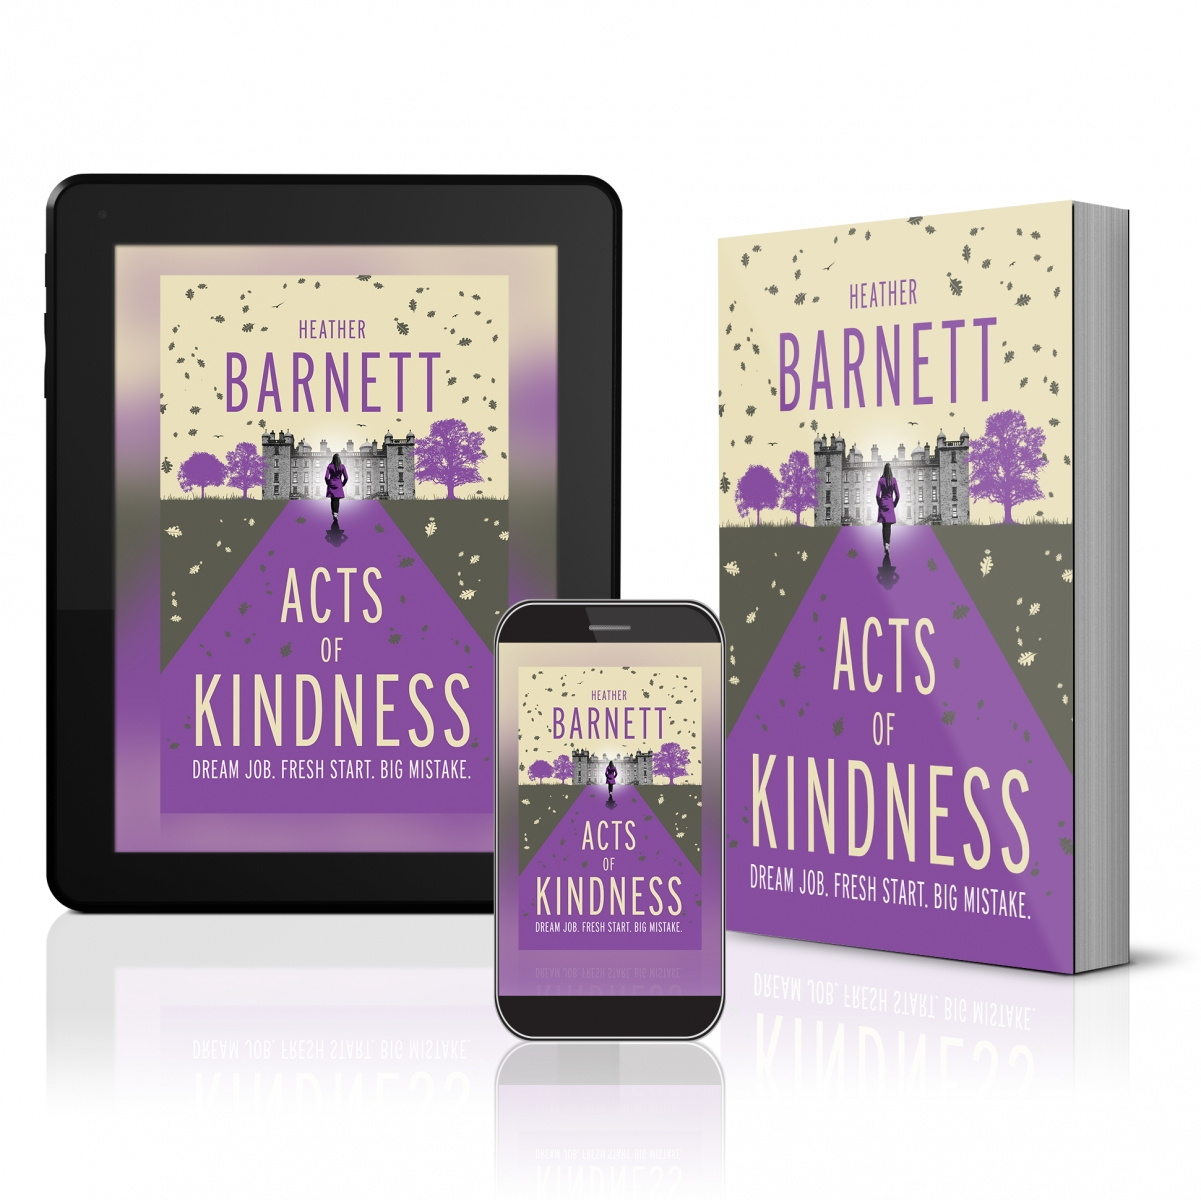 Acts-Of-Kindness_3dBook_wht